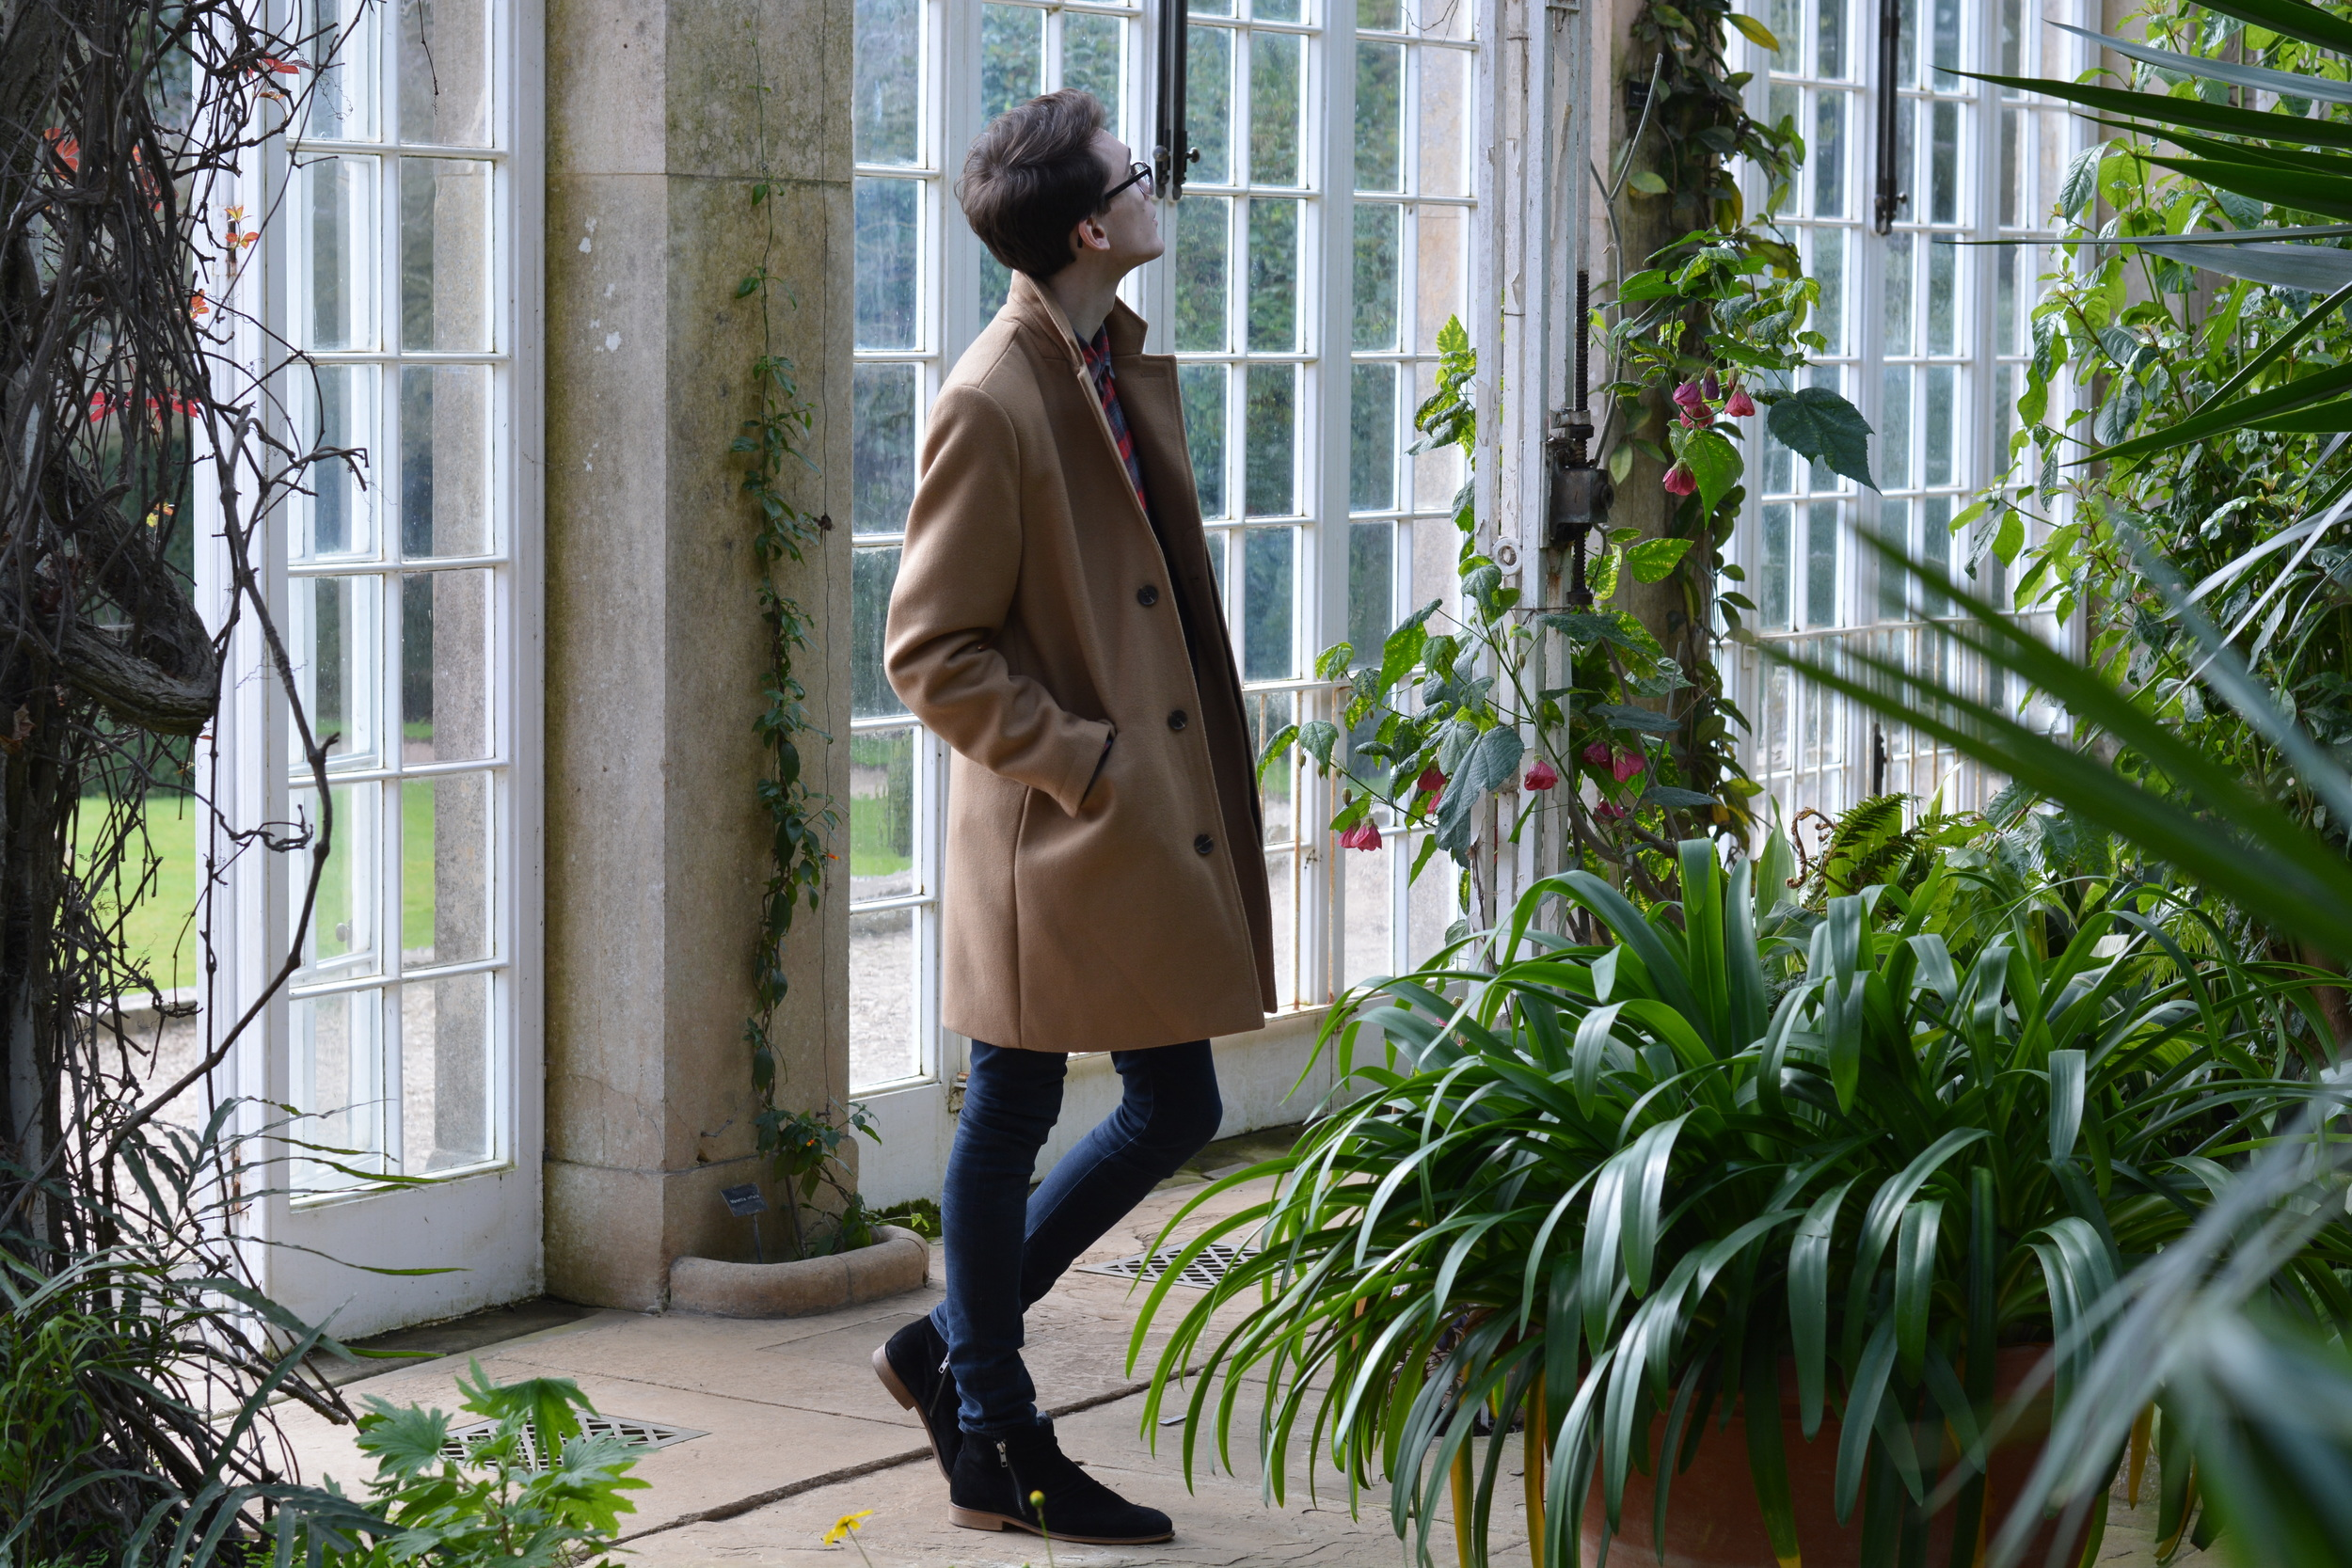 Topman Camel Coat | Sam Squire UK Mens fashion & lifestyle blog